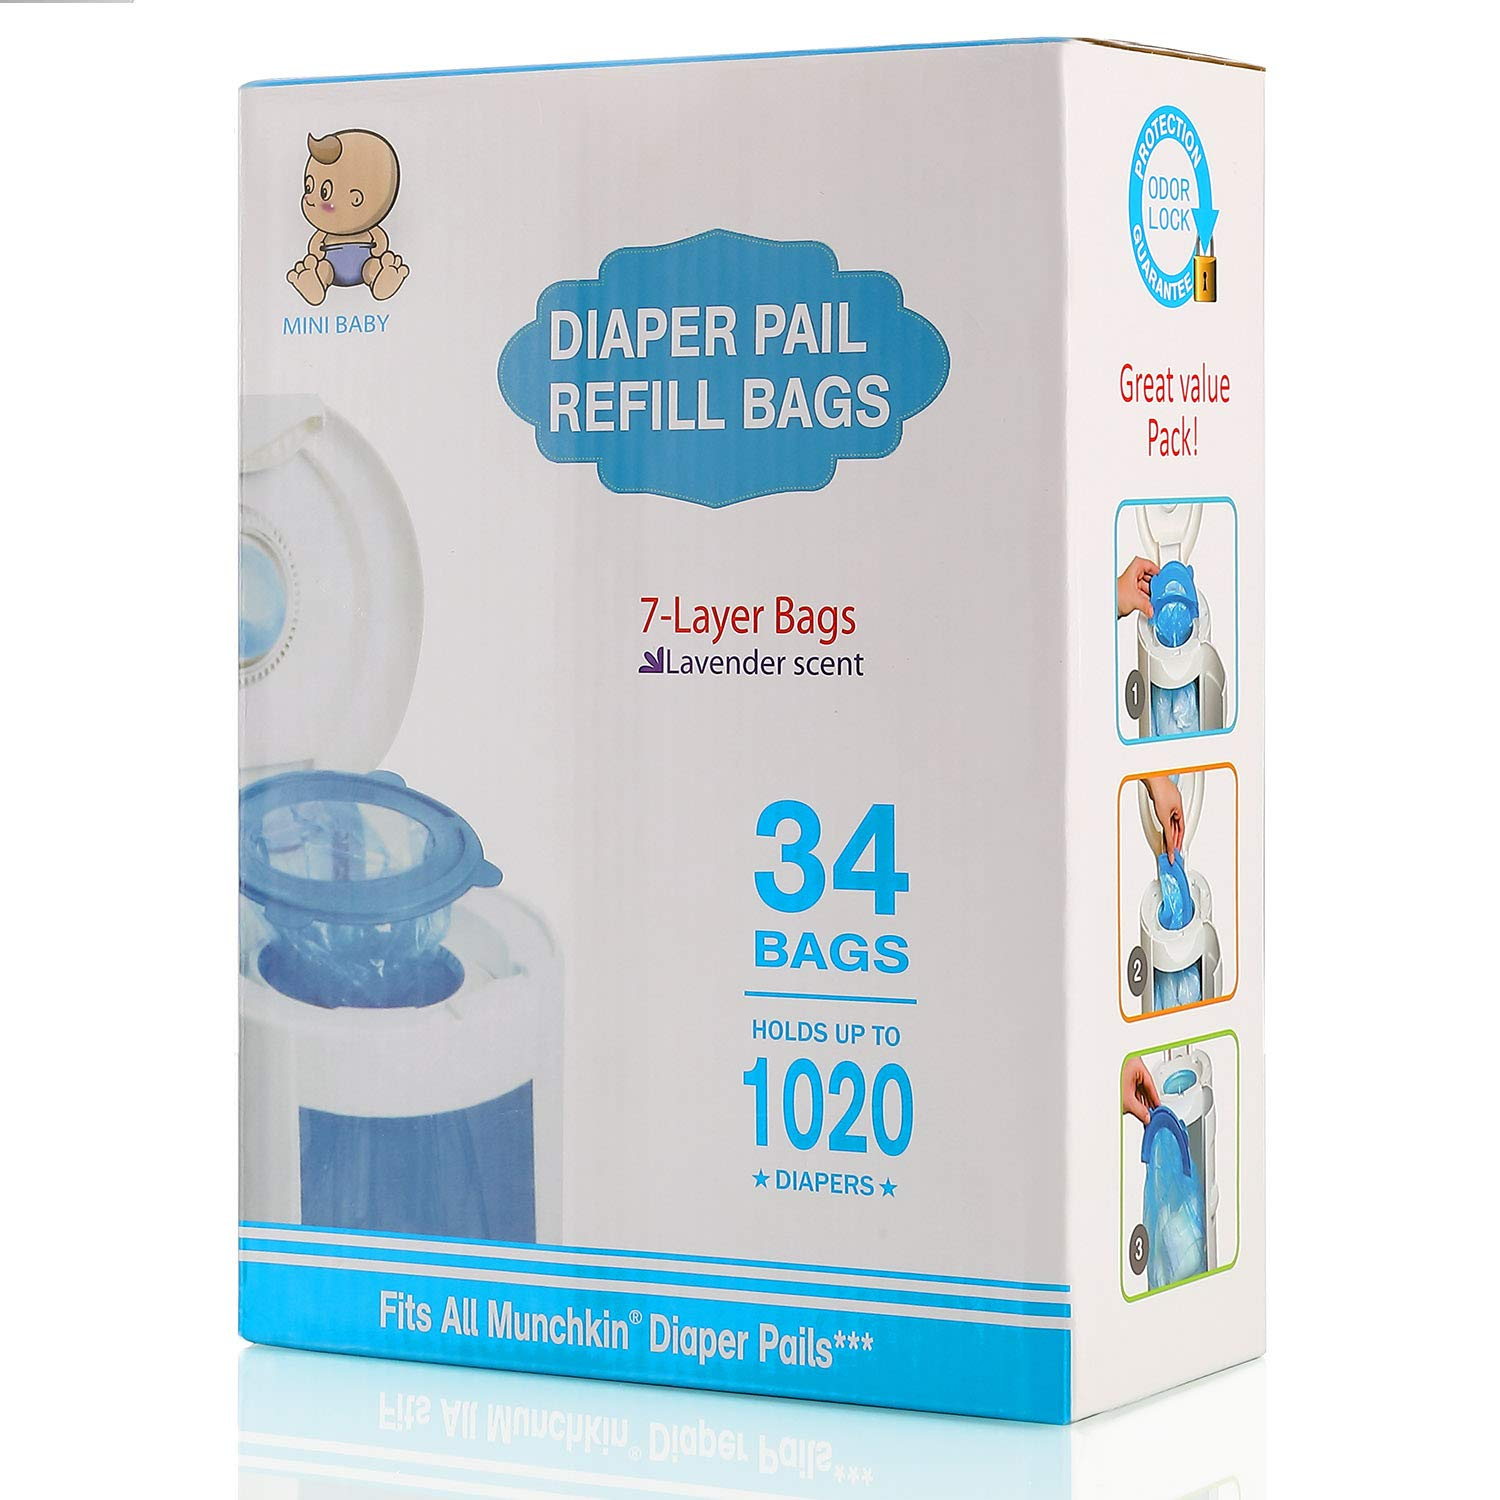 Diaper Pail Refill Bags, 1020 Counts, 34 Bags, Fully Compatible with Arm&Hammer Disposal System by UDME